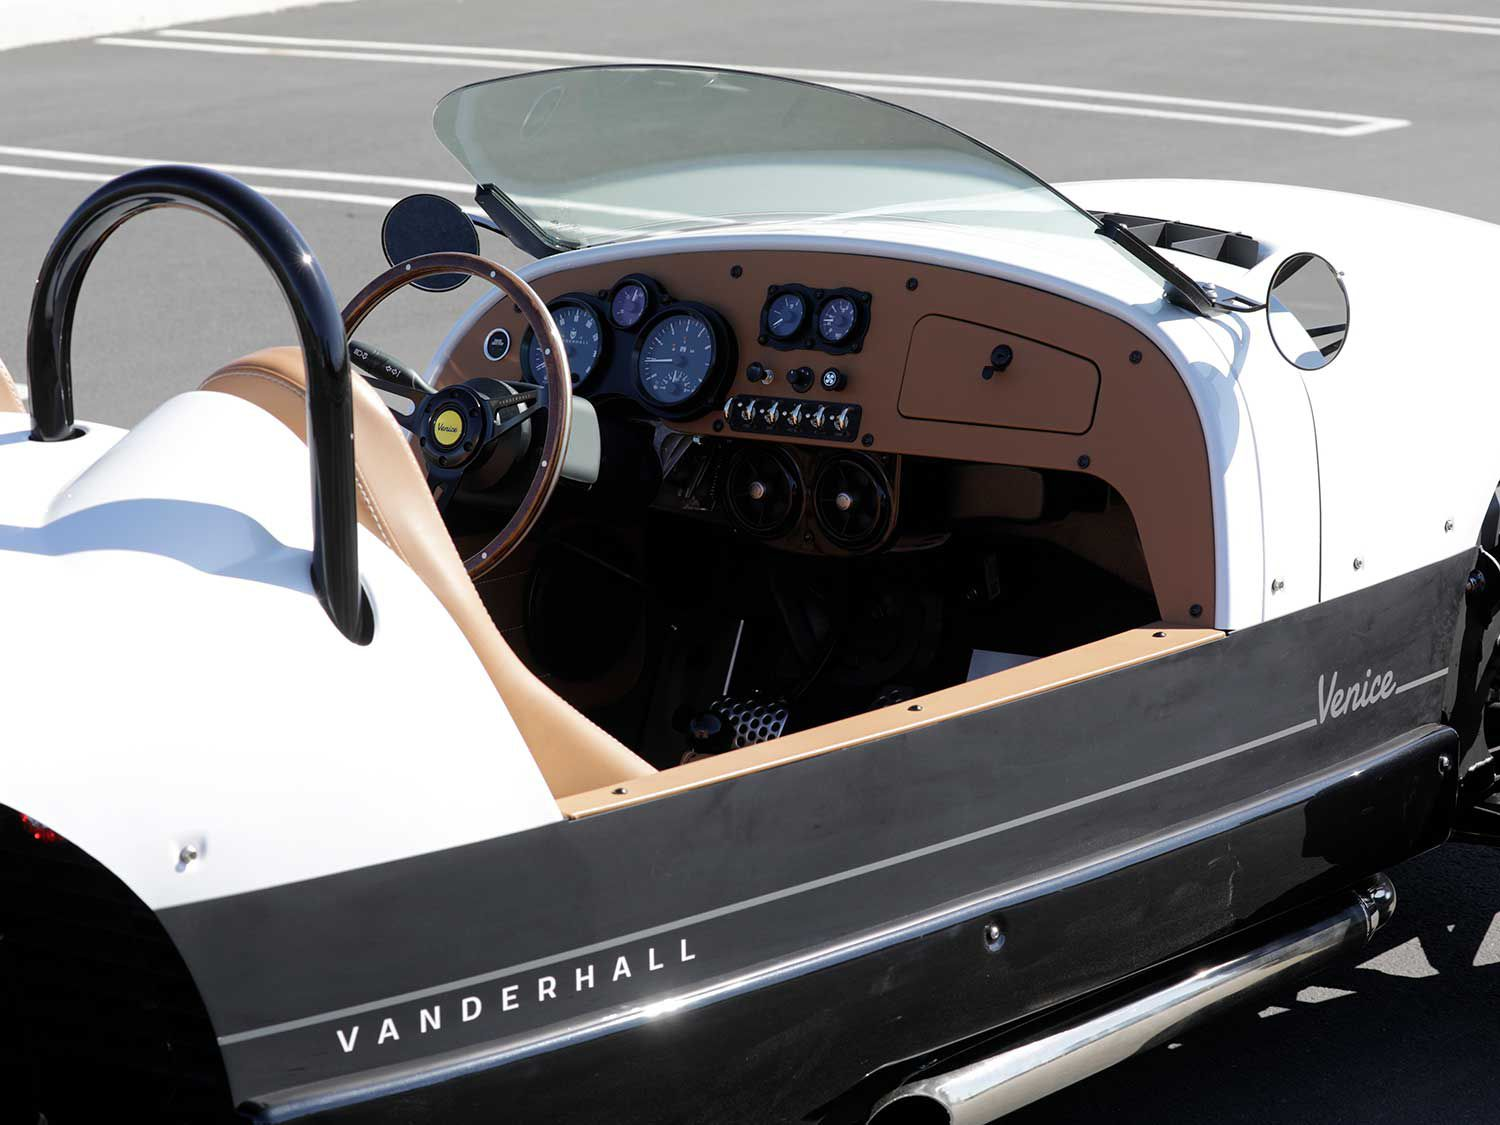 Room for two. The Venice GT offers a bespoke interior with plenty of legroom for taller folks.